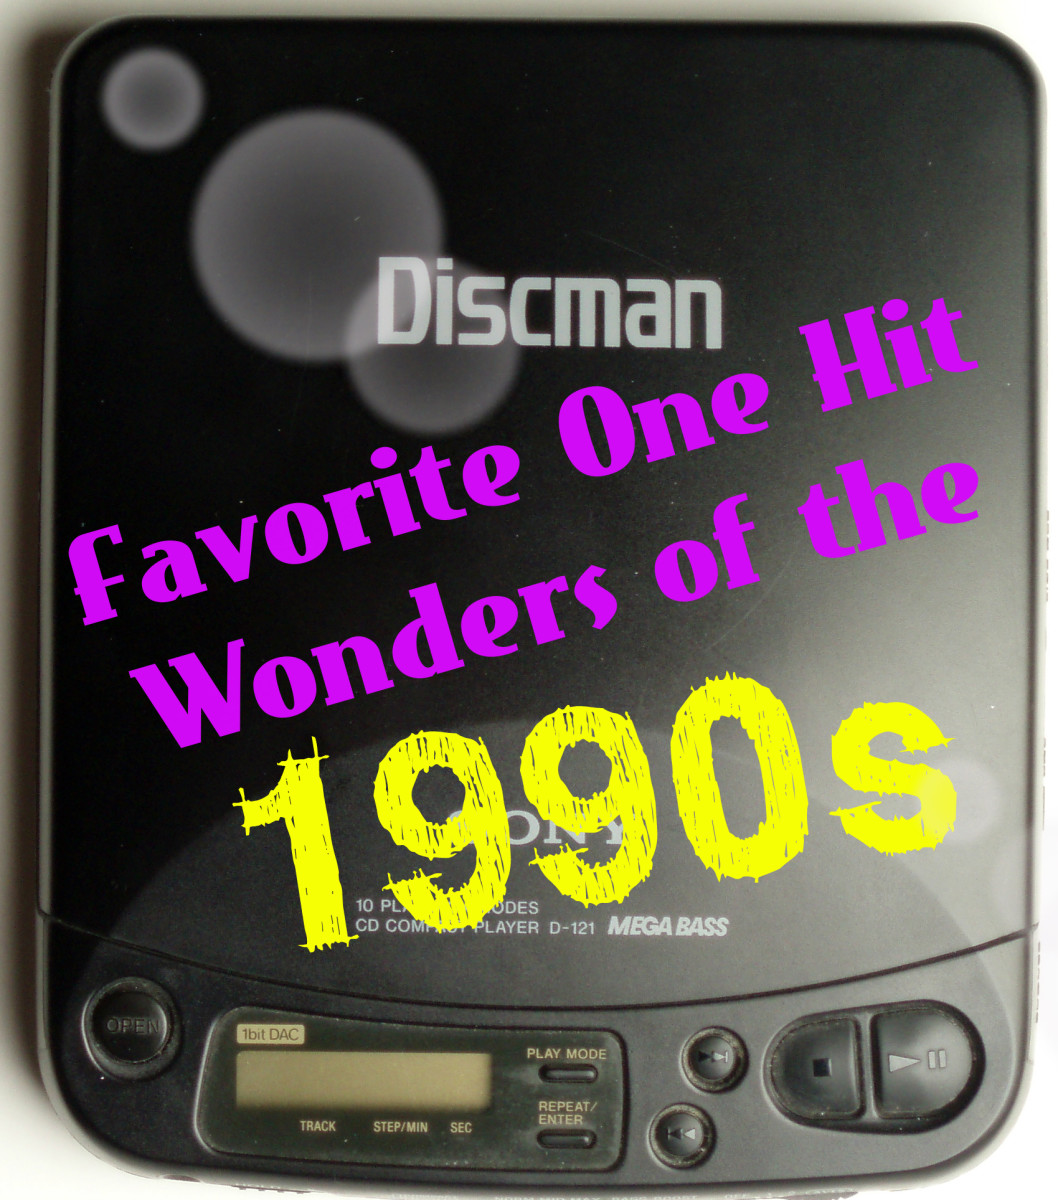 Make a 1990s nostalgia playlist featuring these favorite one-hit wonders from the era. A one-hit wonder is an artist who achieves success primarily for one song.